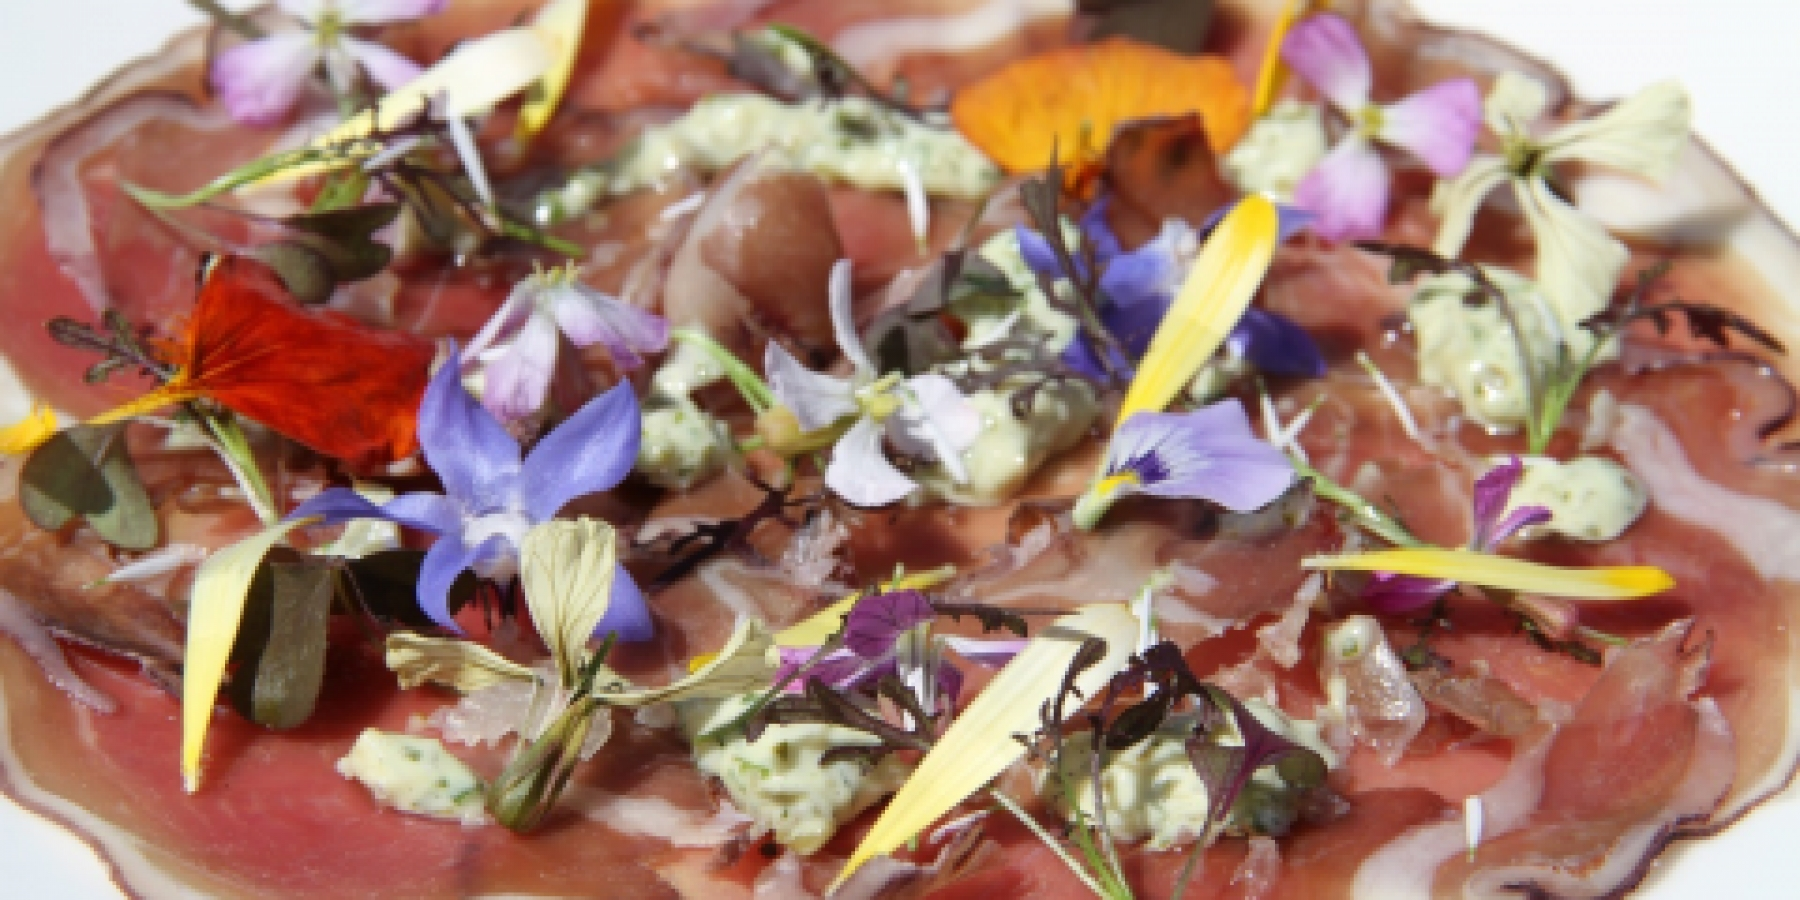 Edible flowers for chefs. Wholesale edible flowers for caterers and chefs.